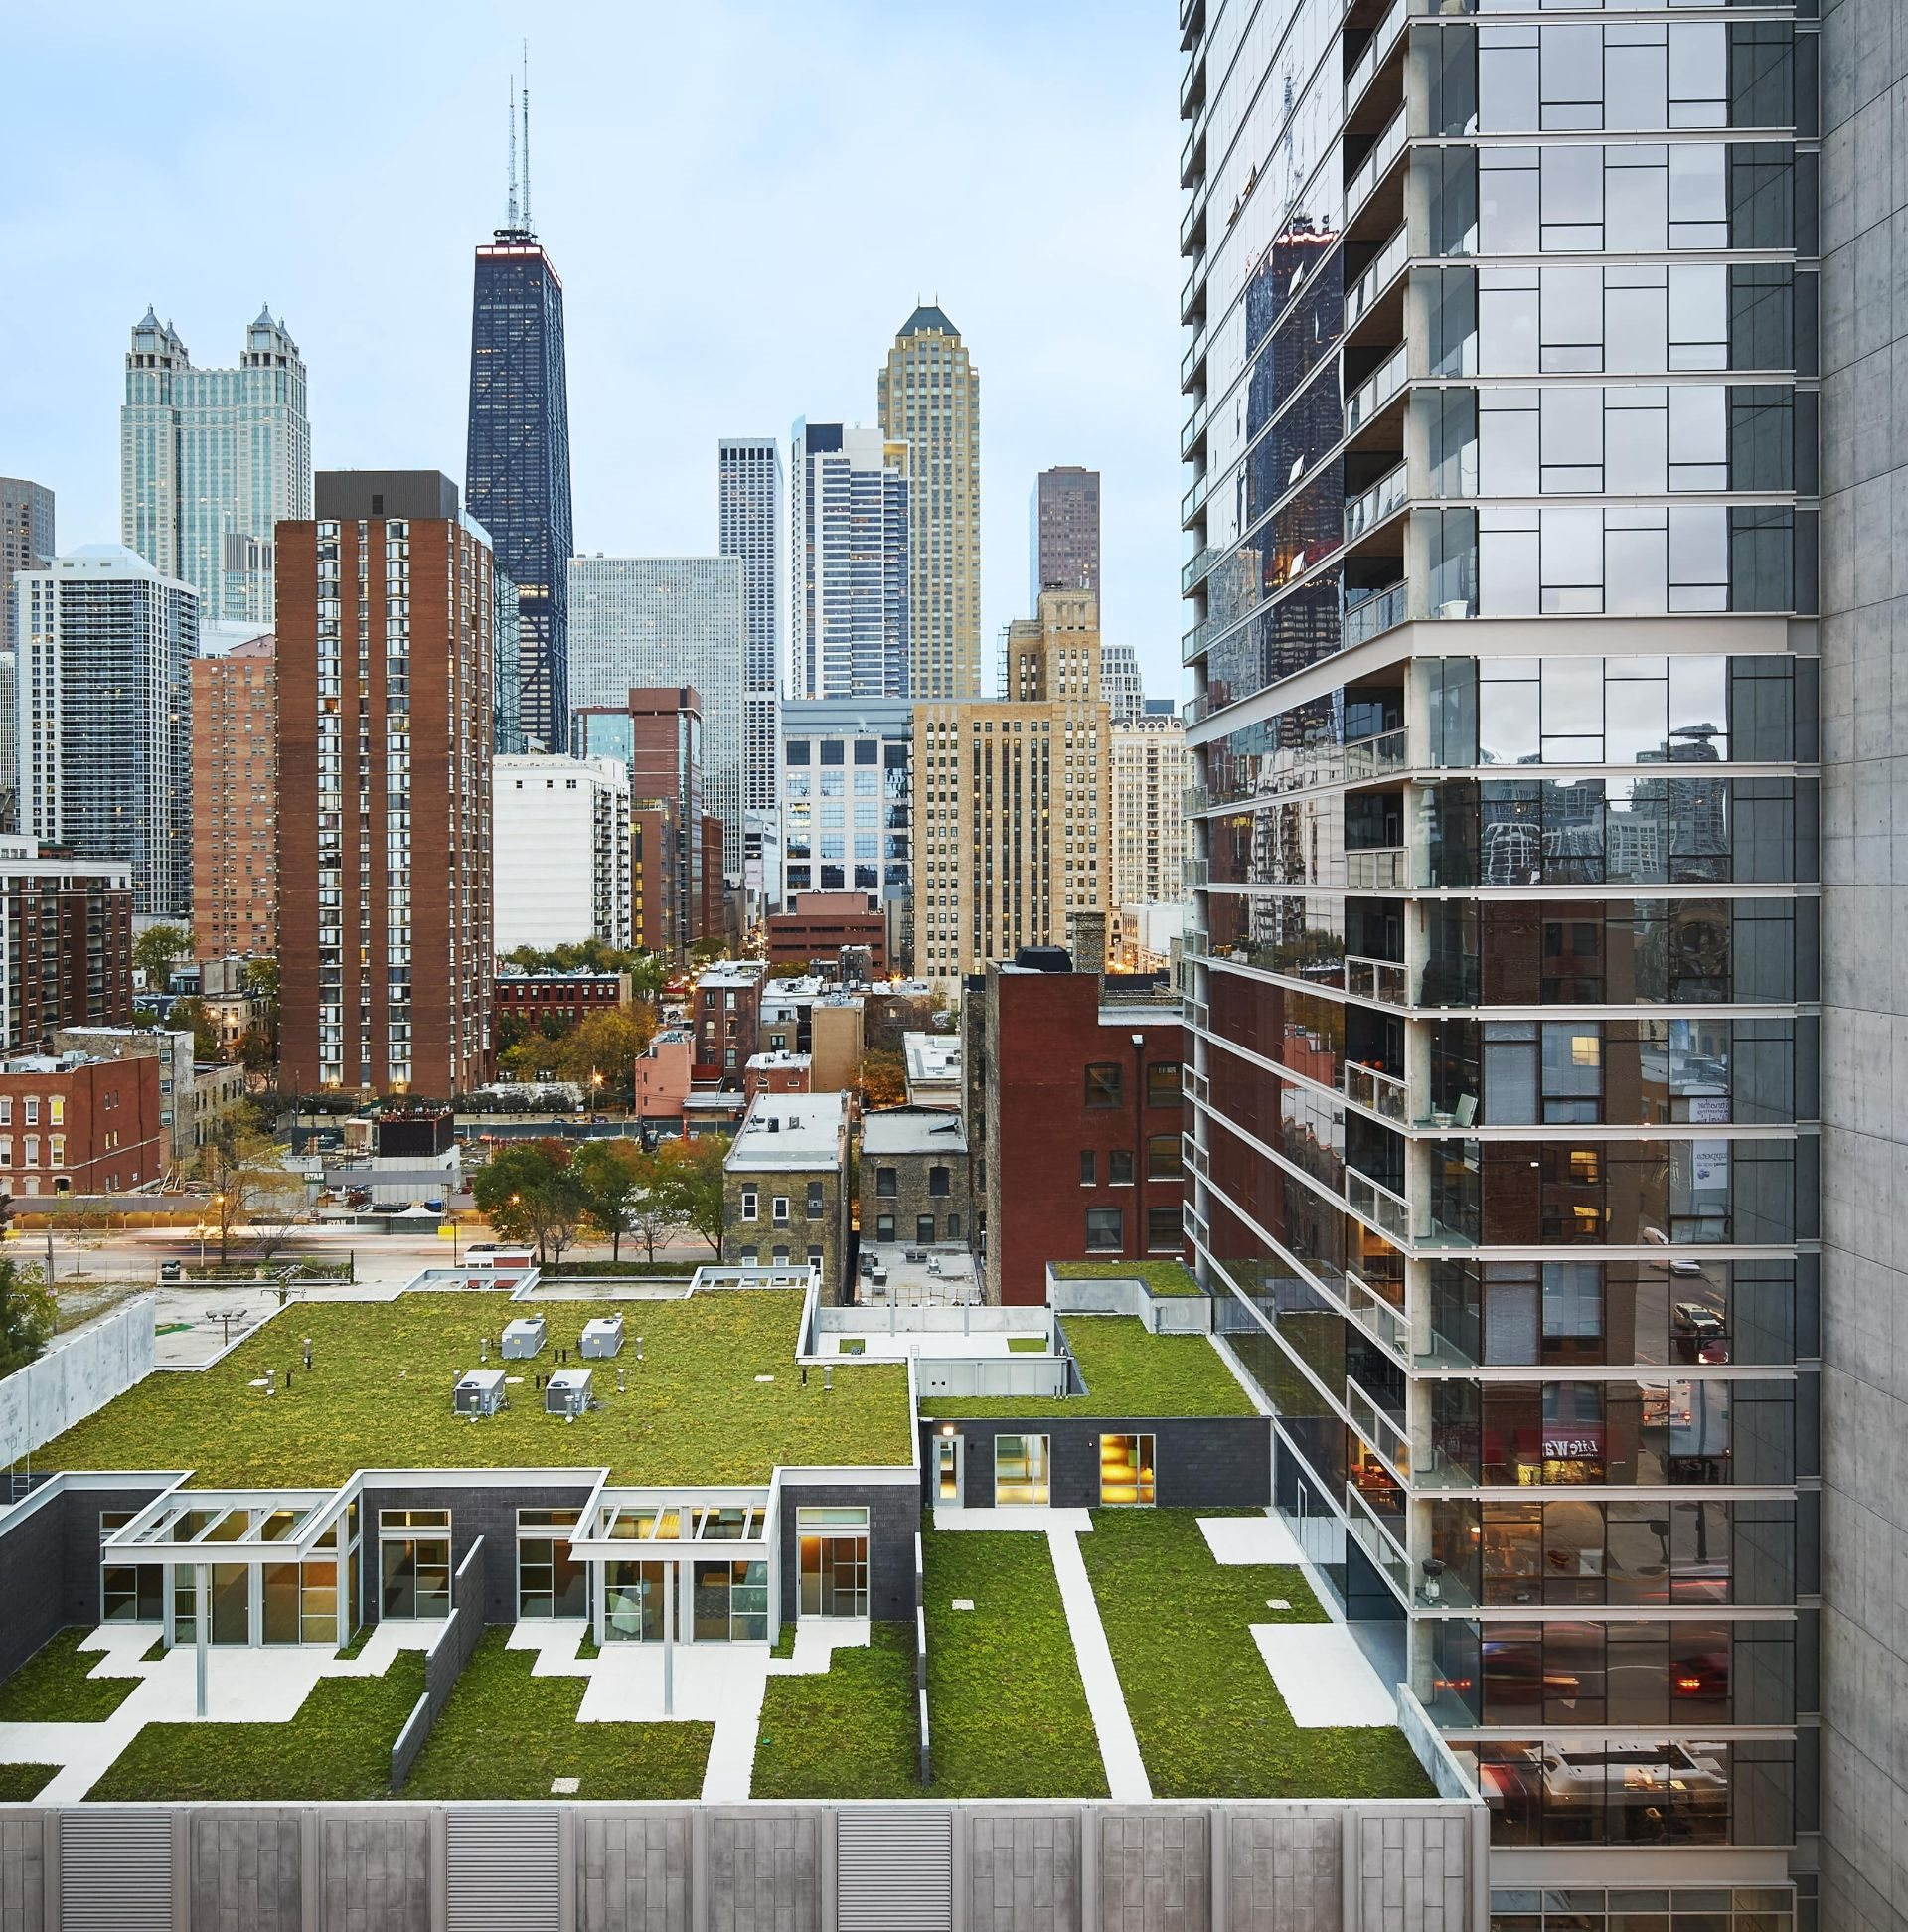 Eight O Five Apartments, 805 N. Lasalle Drive, Chicago, IL. 60610 Studio 1 and 2 Bedroom Apartments and Townhomes with City Views